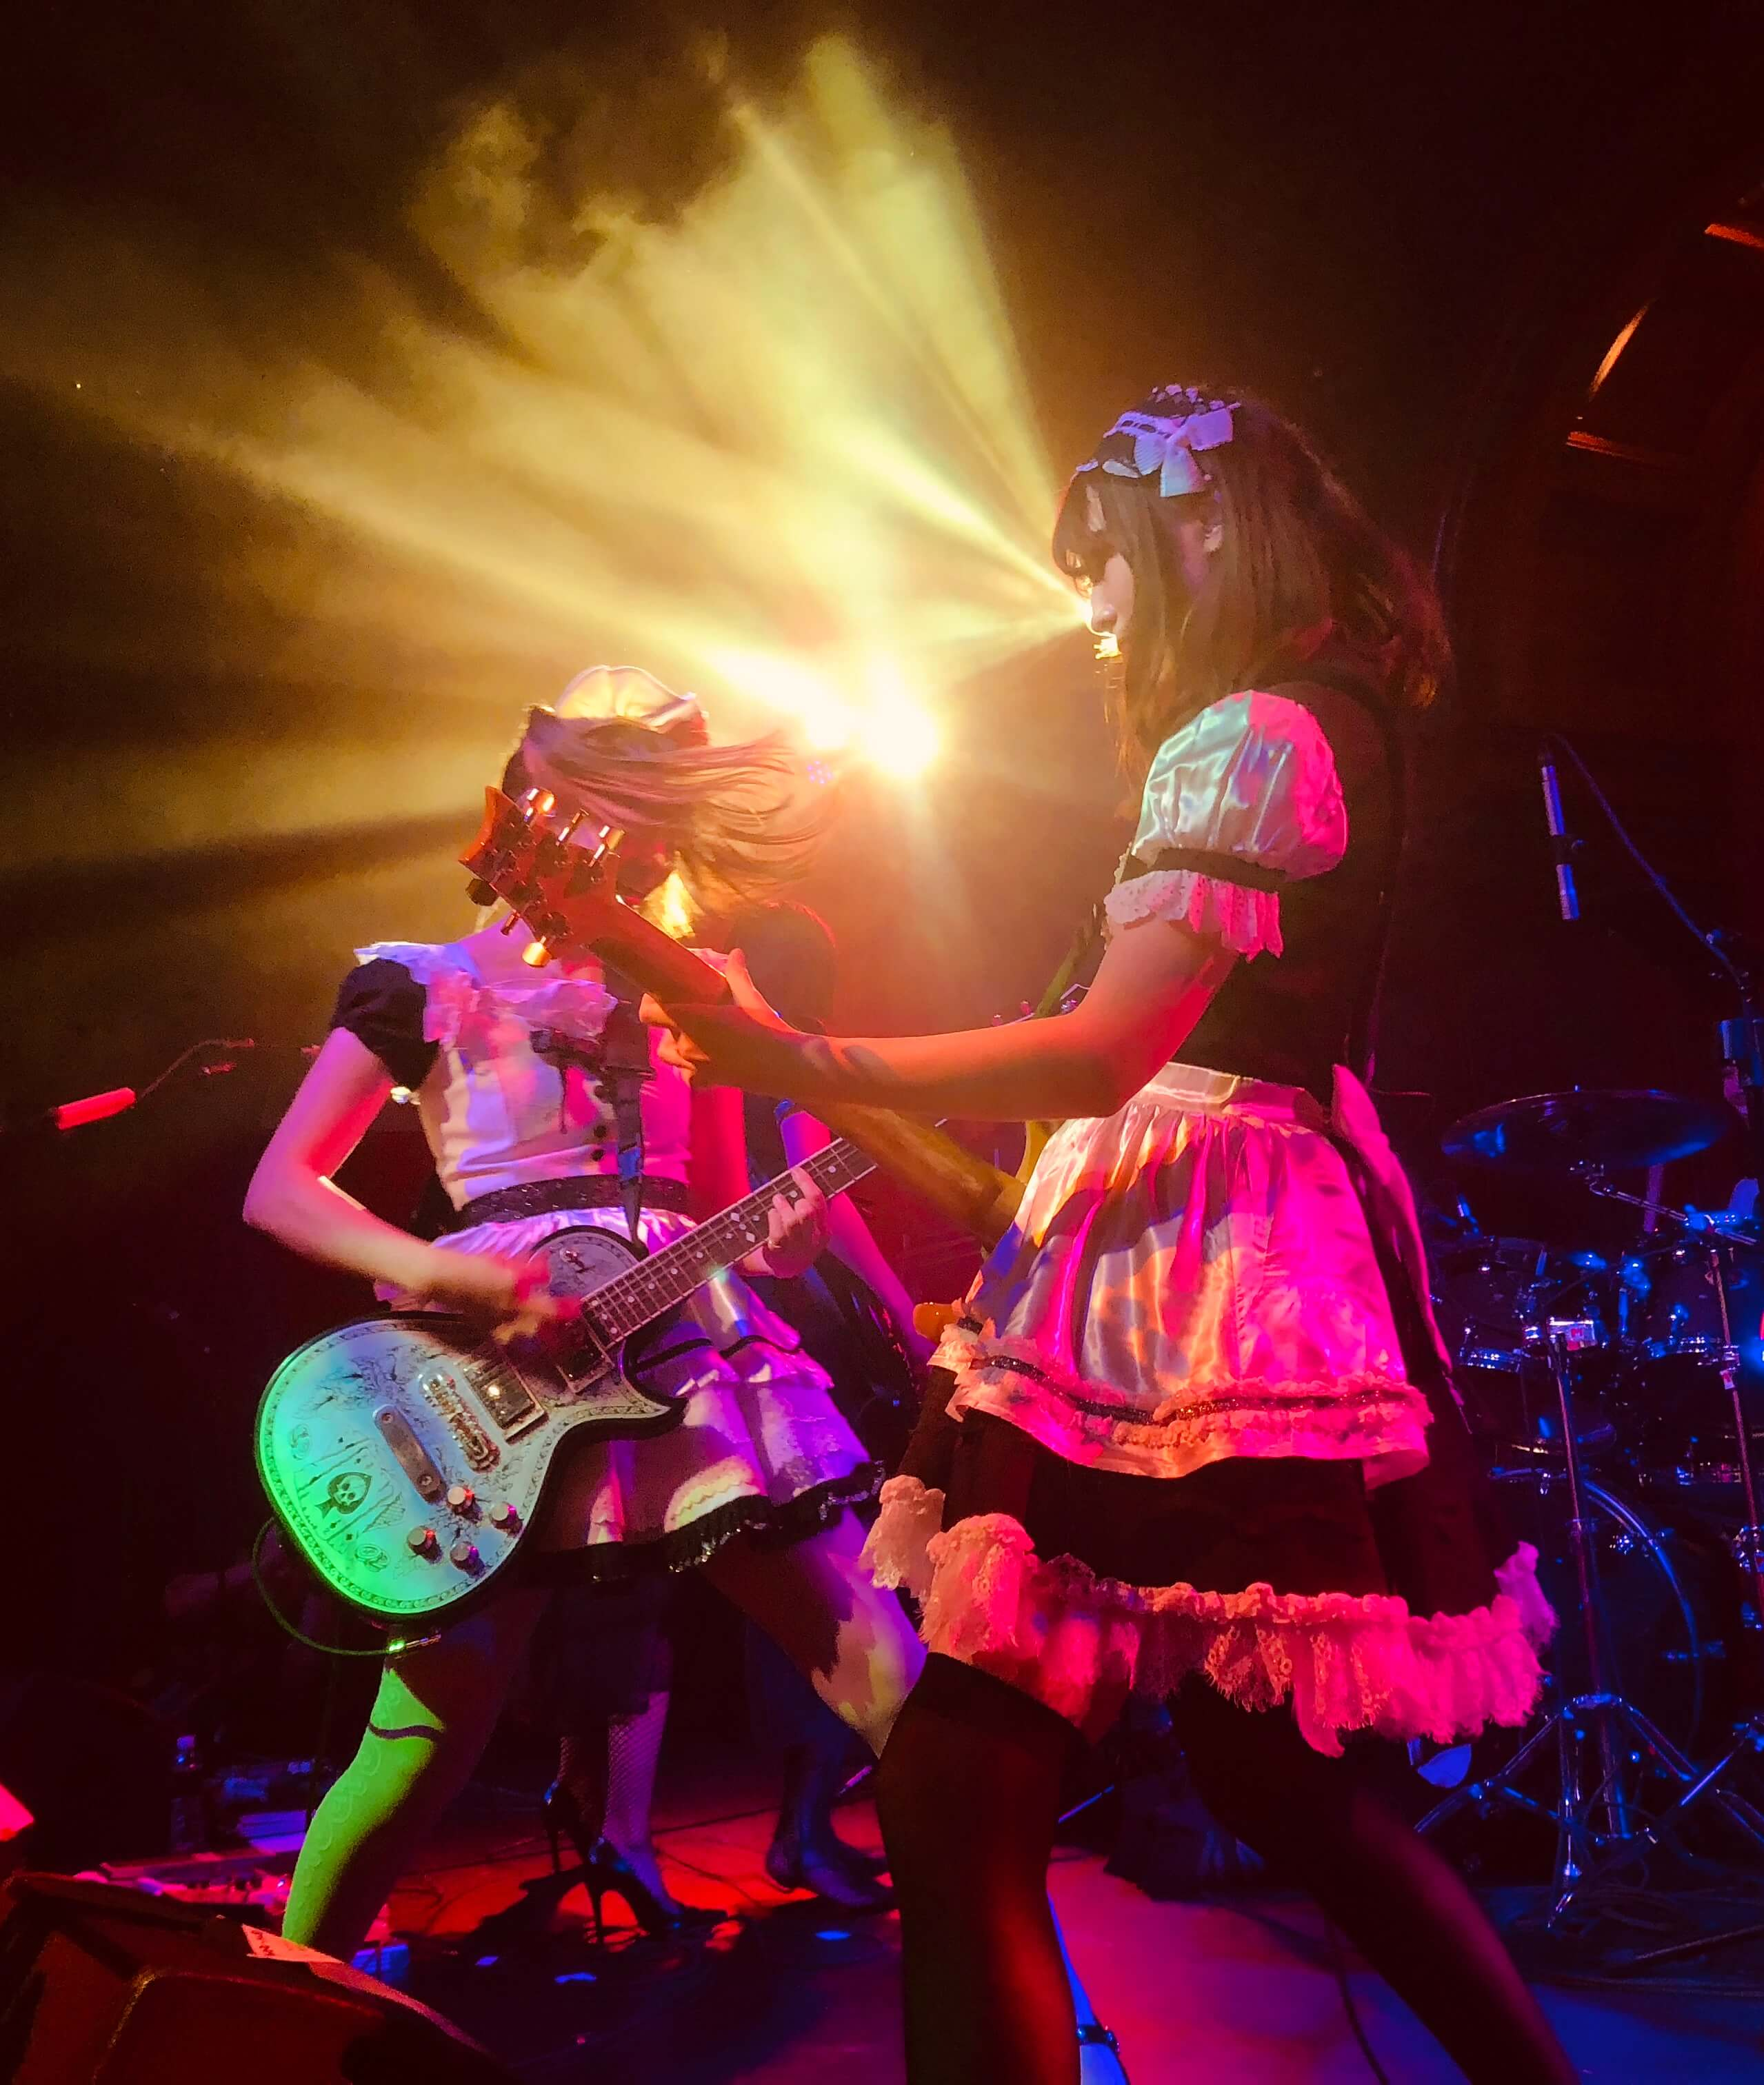 Concert Review: BAND-MAID's First US Solo Show a Huge